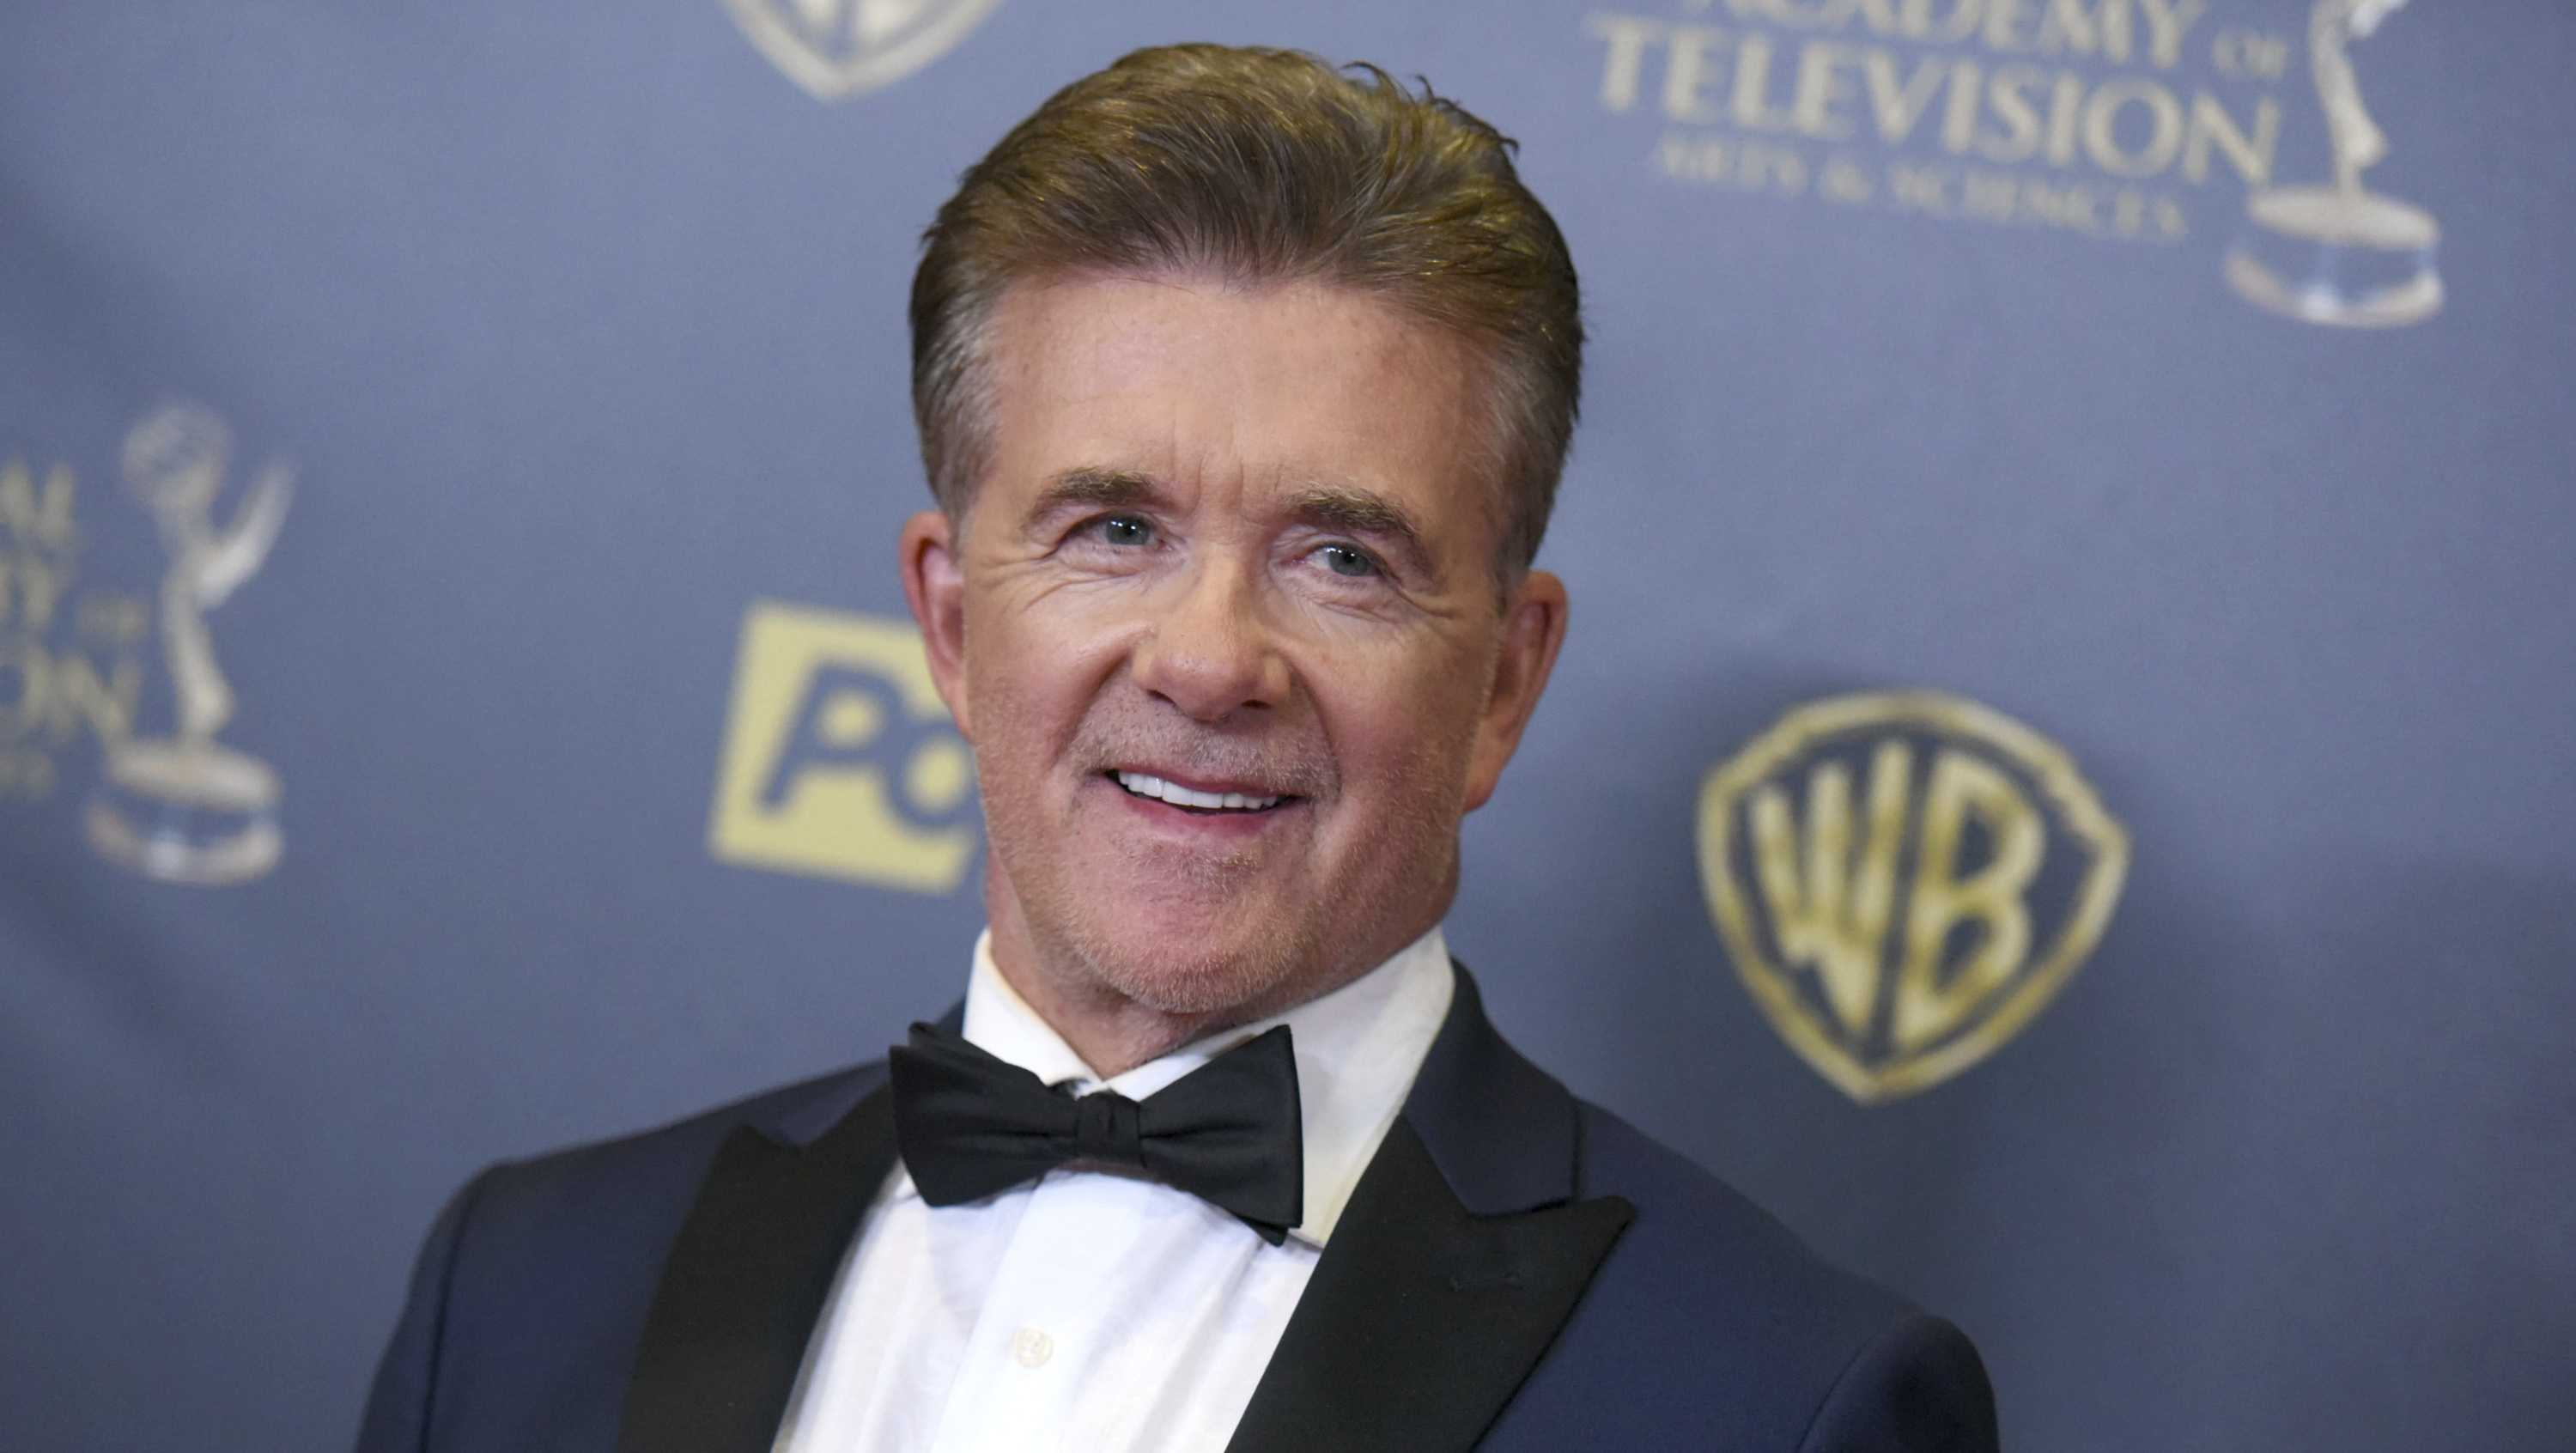 In this Sunday, April 26, 2015 file photo, Alan Thicke poses in the pressroom at the 42nd annual Daytime Emmy Awards at Warner Bros. Studios in Burbank, Calif.